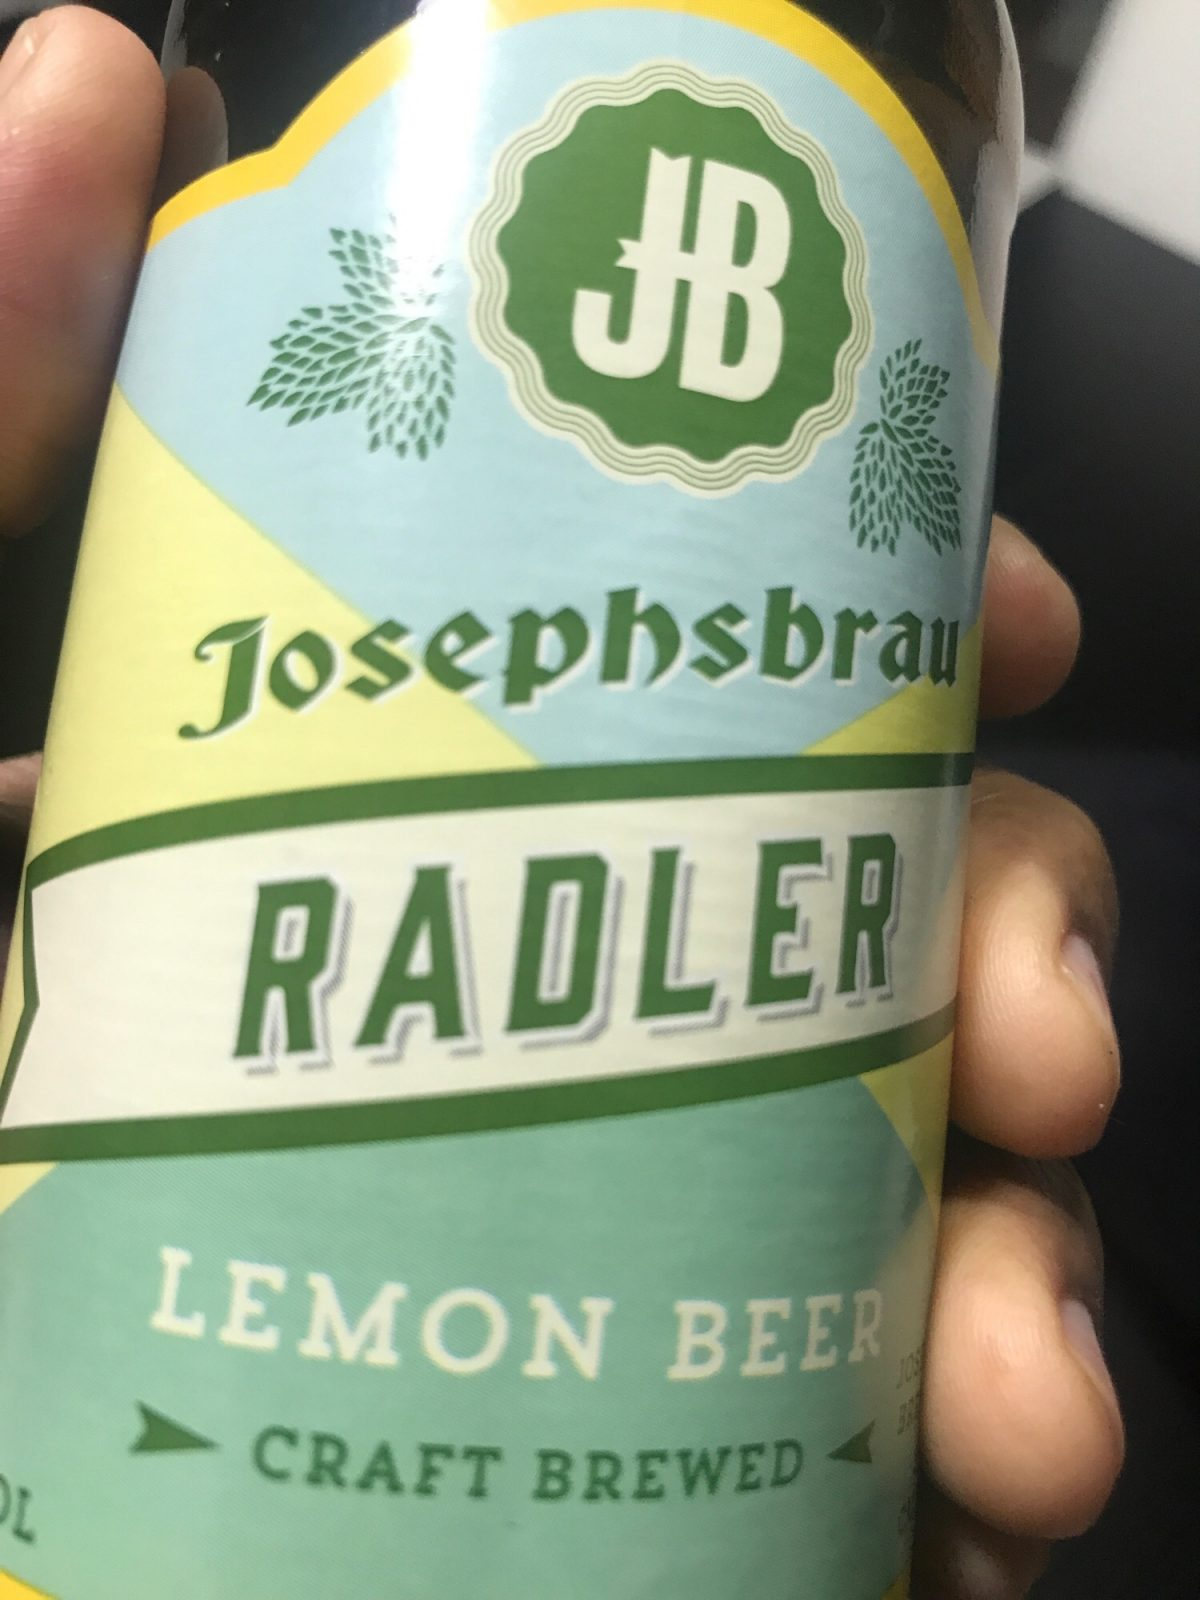 16af74cc7354 I am in drinking Radler by Trader Joe s (JosephsBrau)